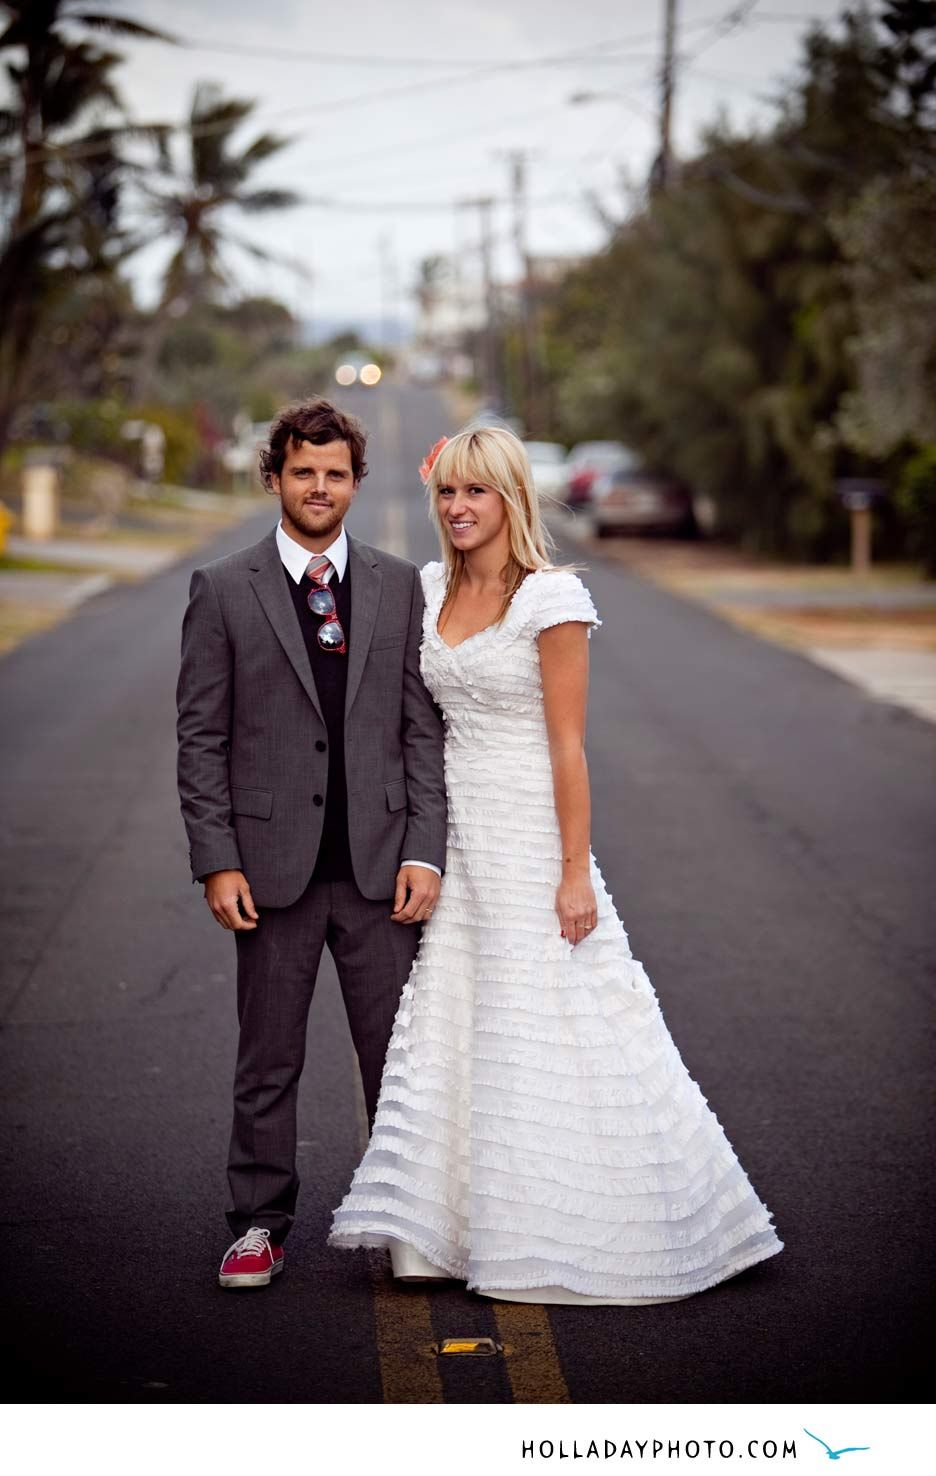 I know the perfect street to take this photo wedding wishes